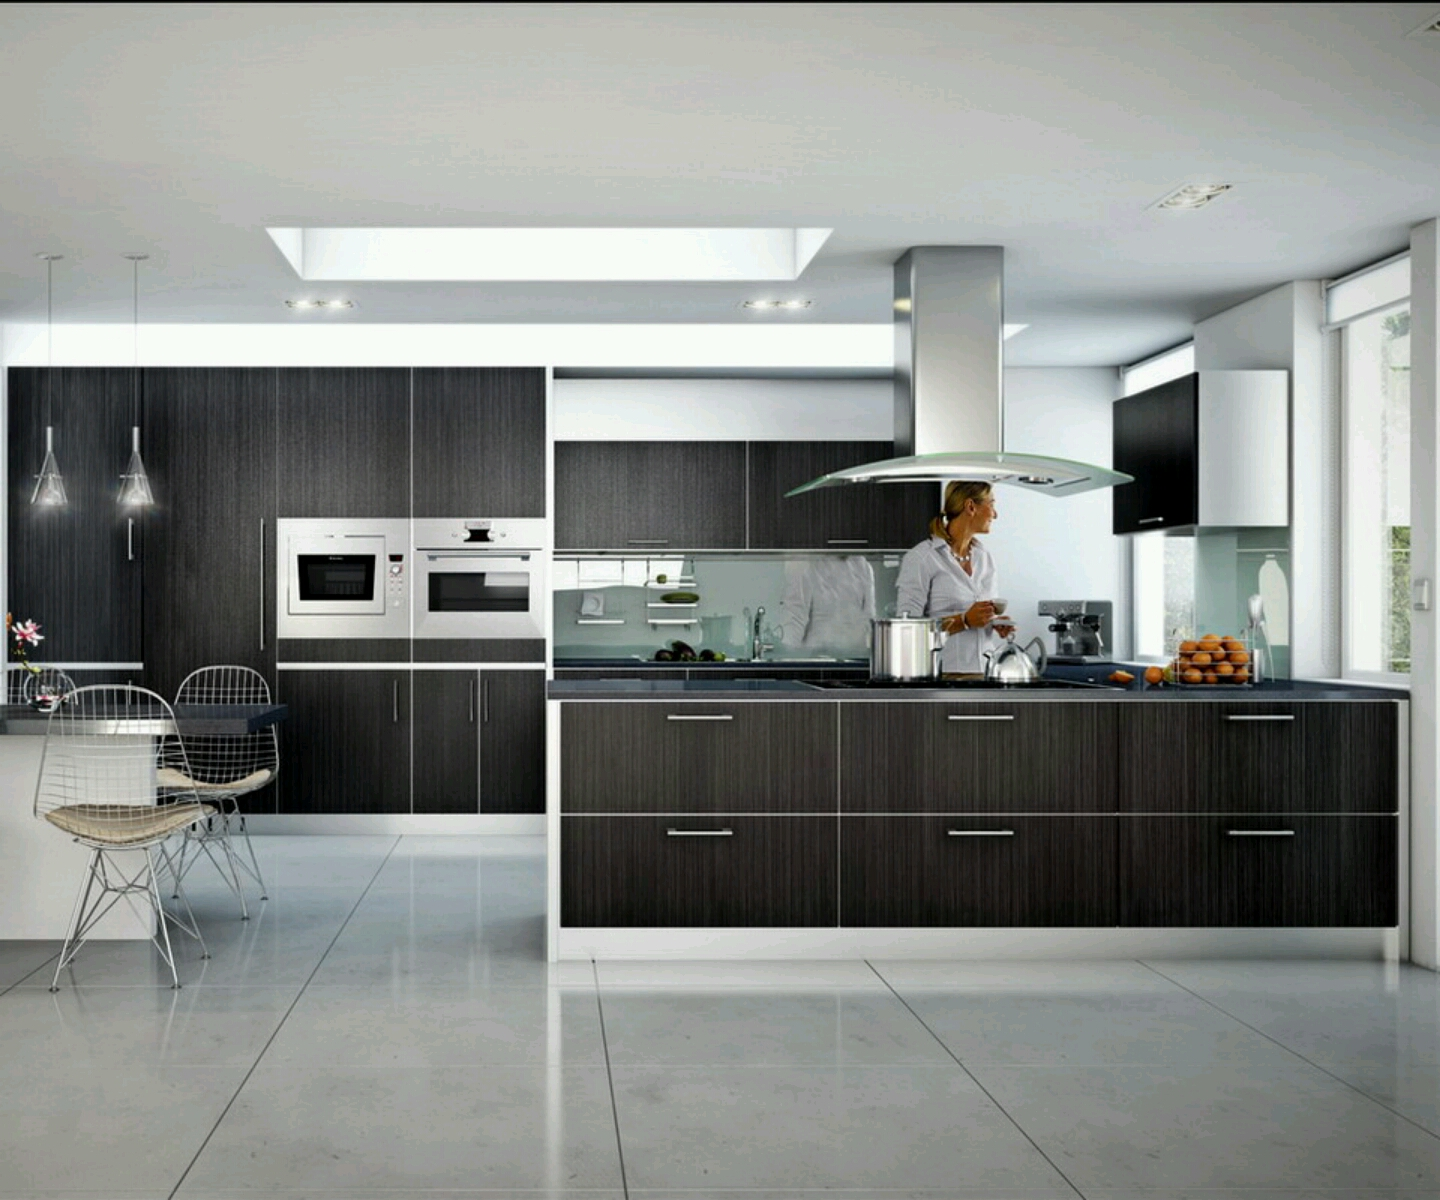 Pictures Of Modern Kitchens: New Home Designs Latest.: Modern Homes Ultra Modern